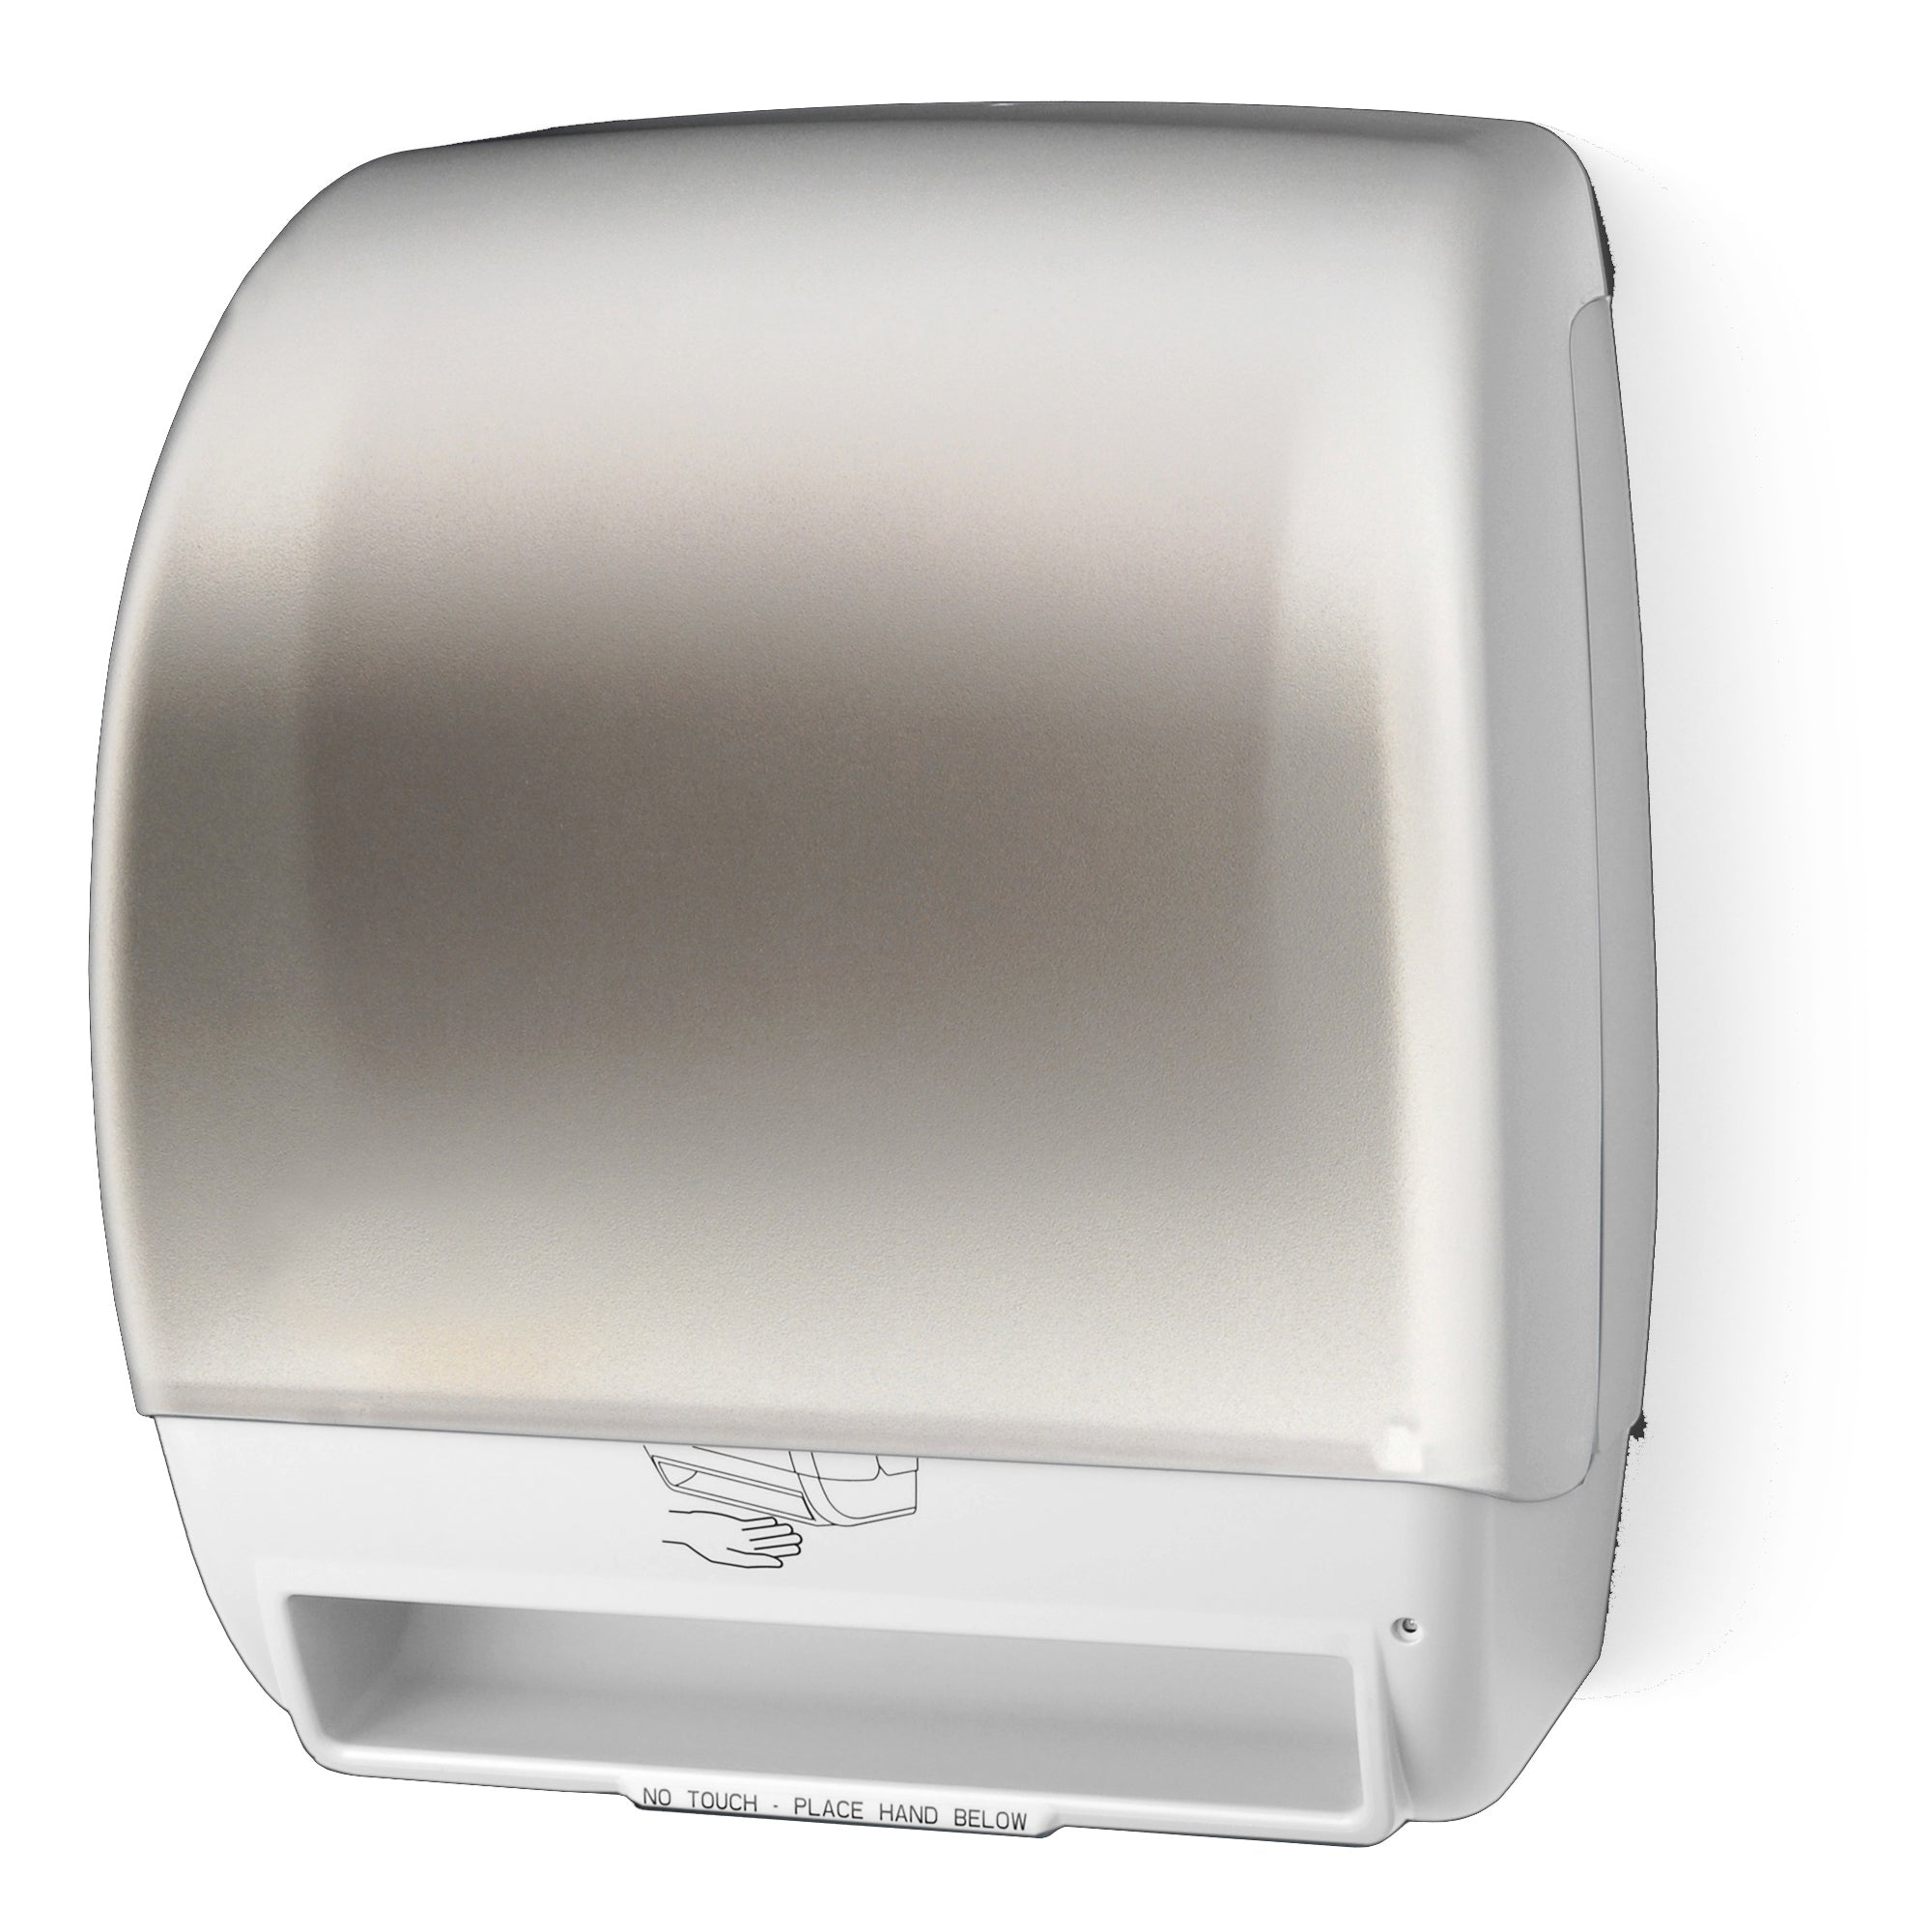 TOWEL DISPENSER/ Roll System/ Merfin/ Electronic, White